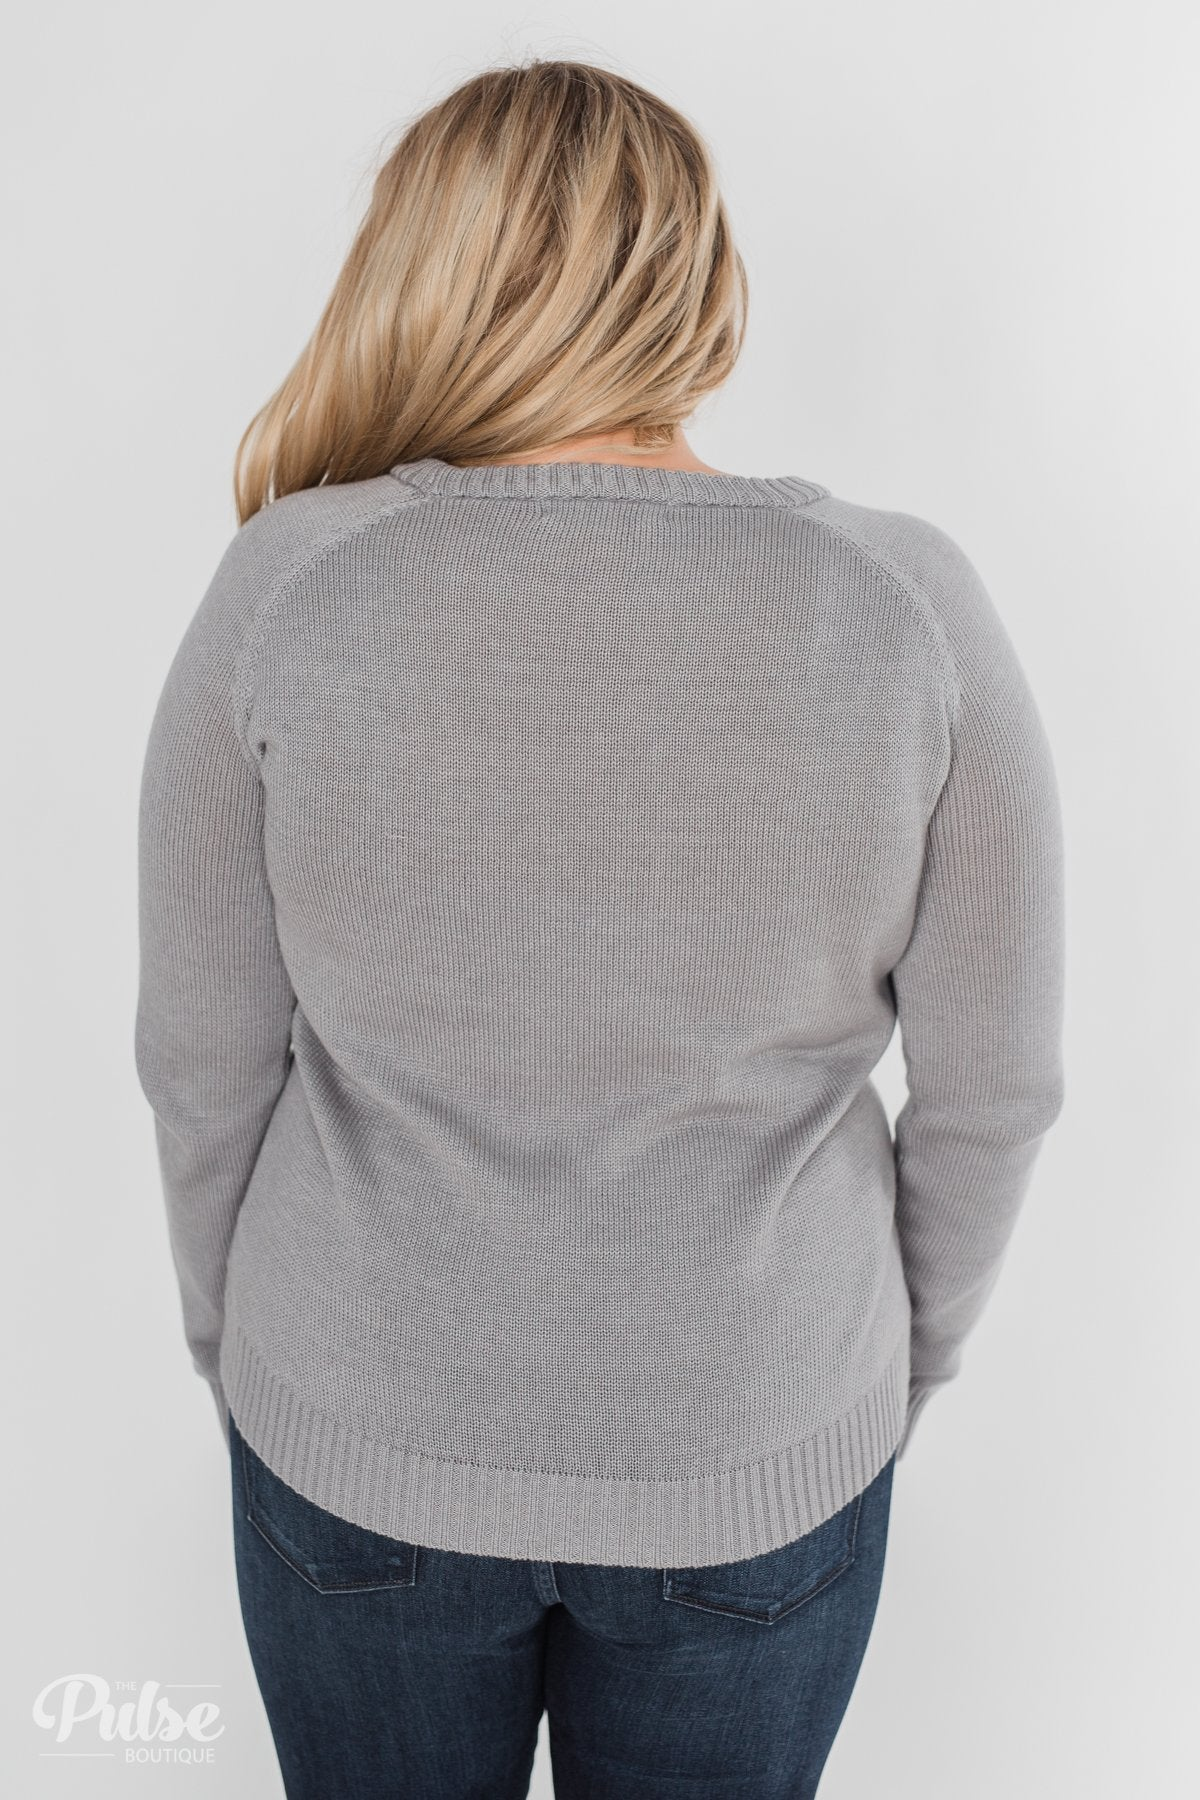 Follow Your Heart Knitted Sweater- Grey